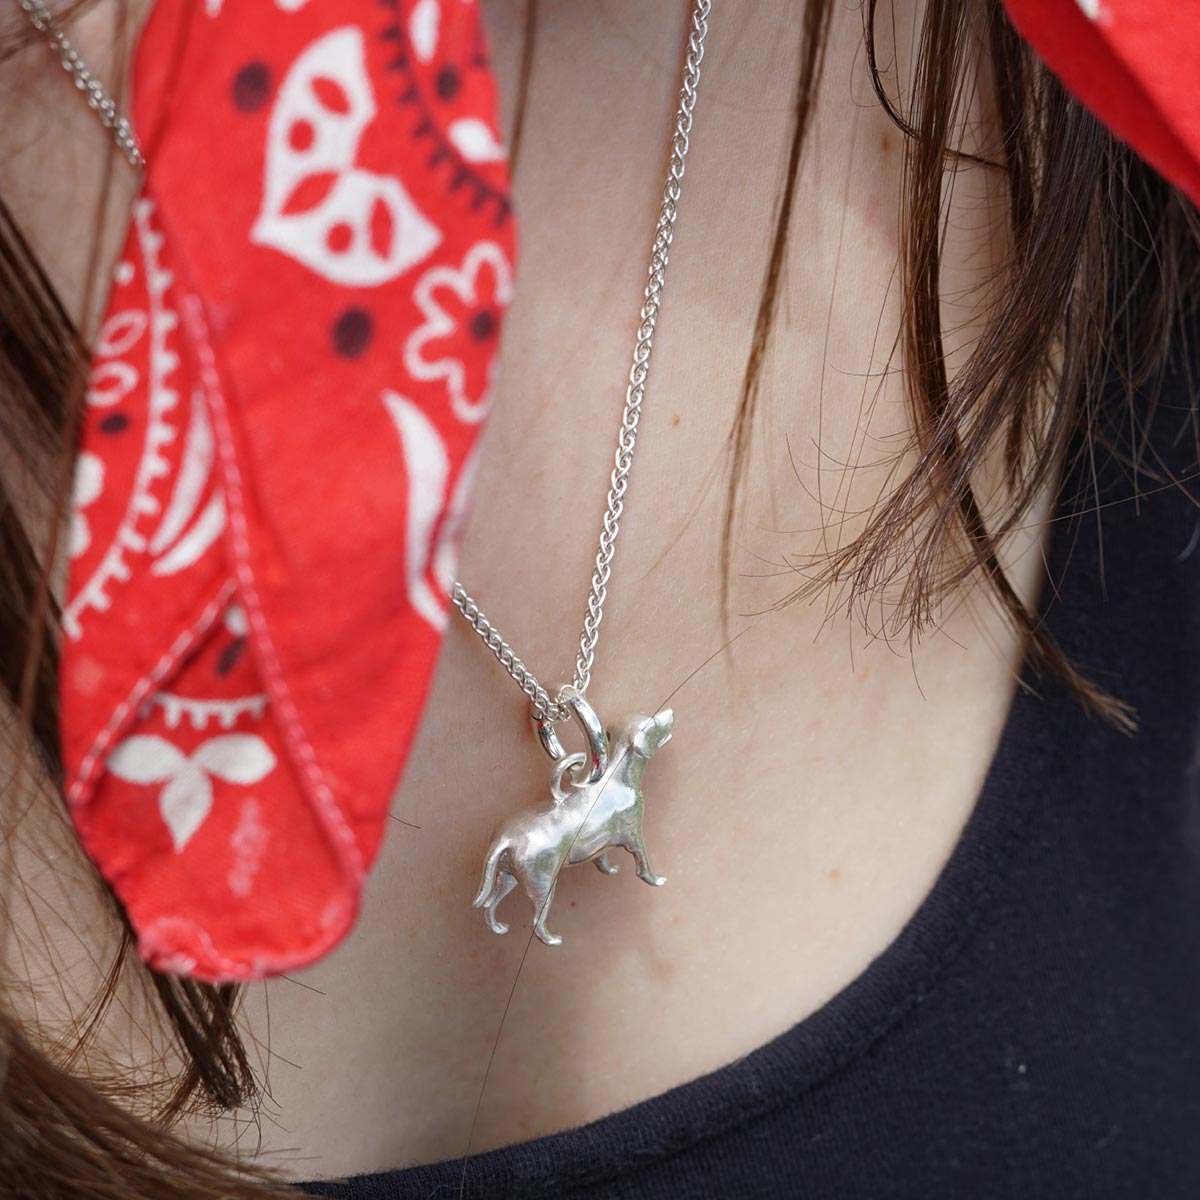 Model with dog charm